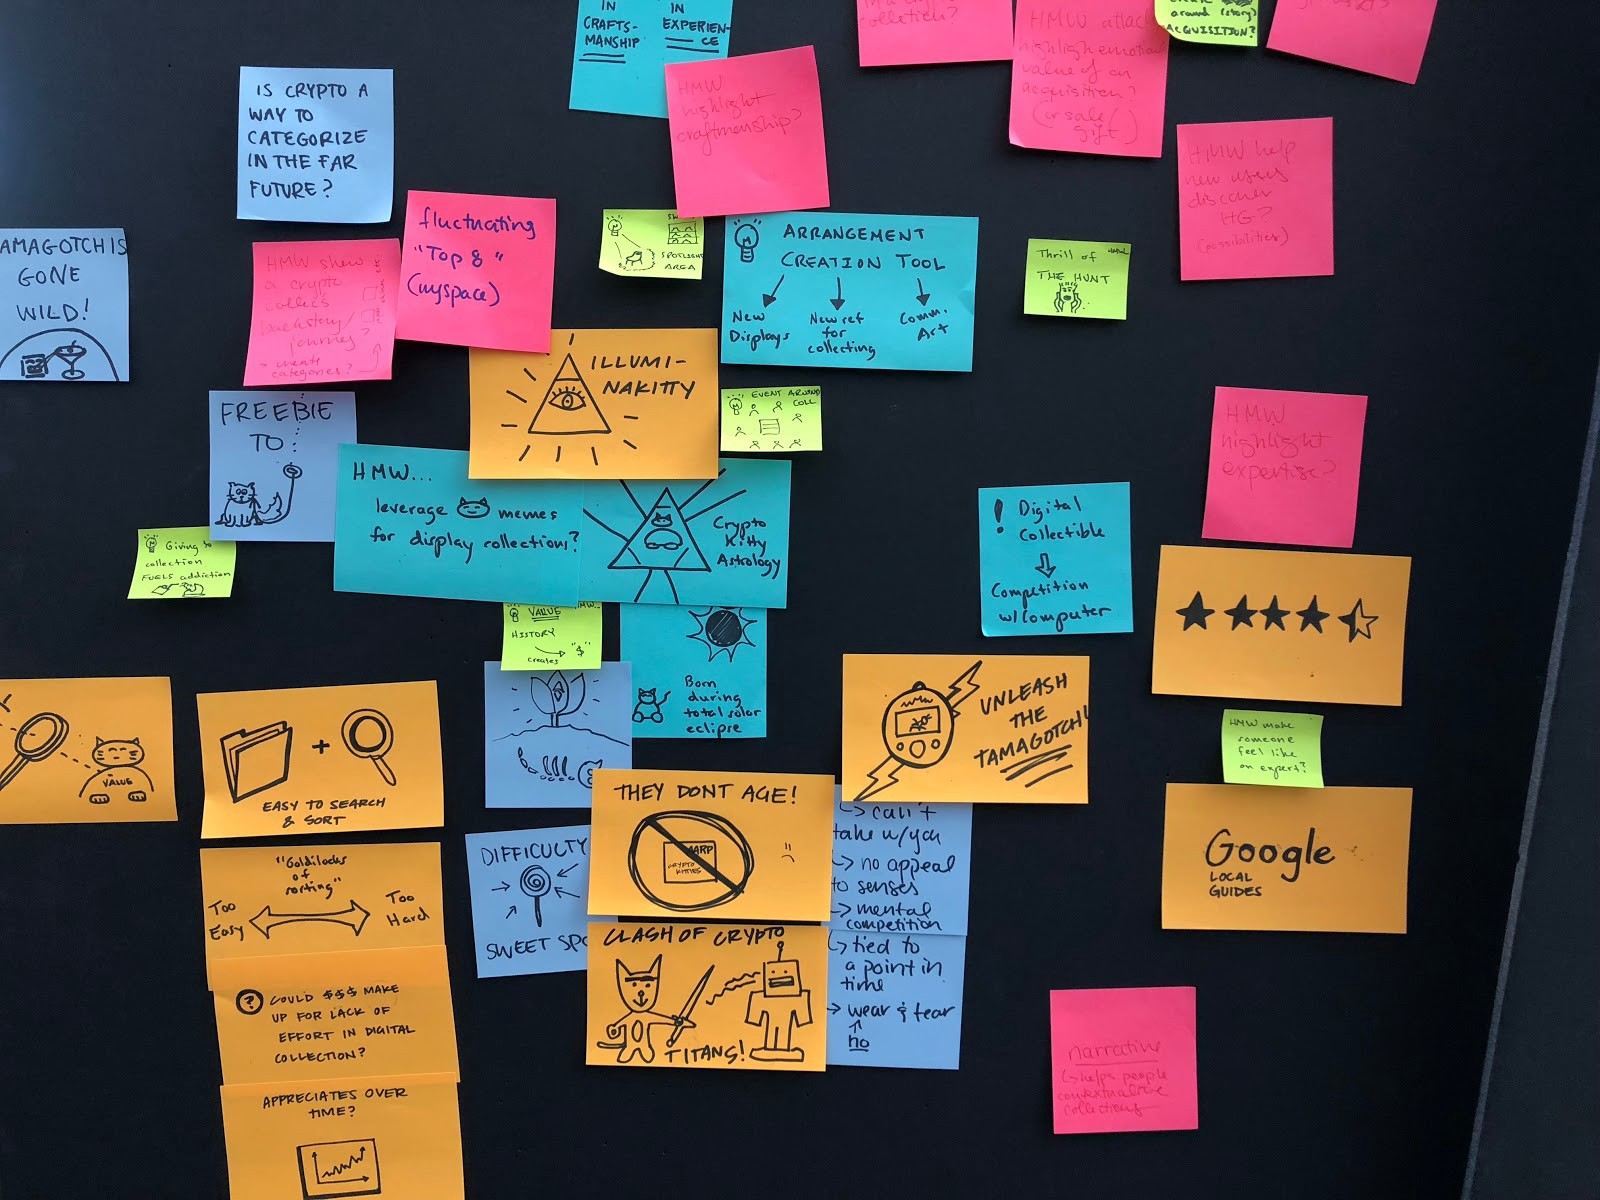 Some entertaining brainstorming sticky notes.